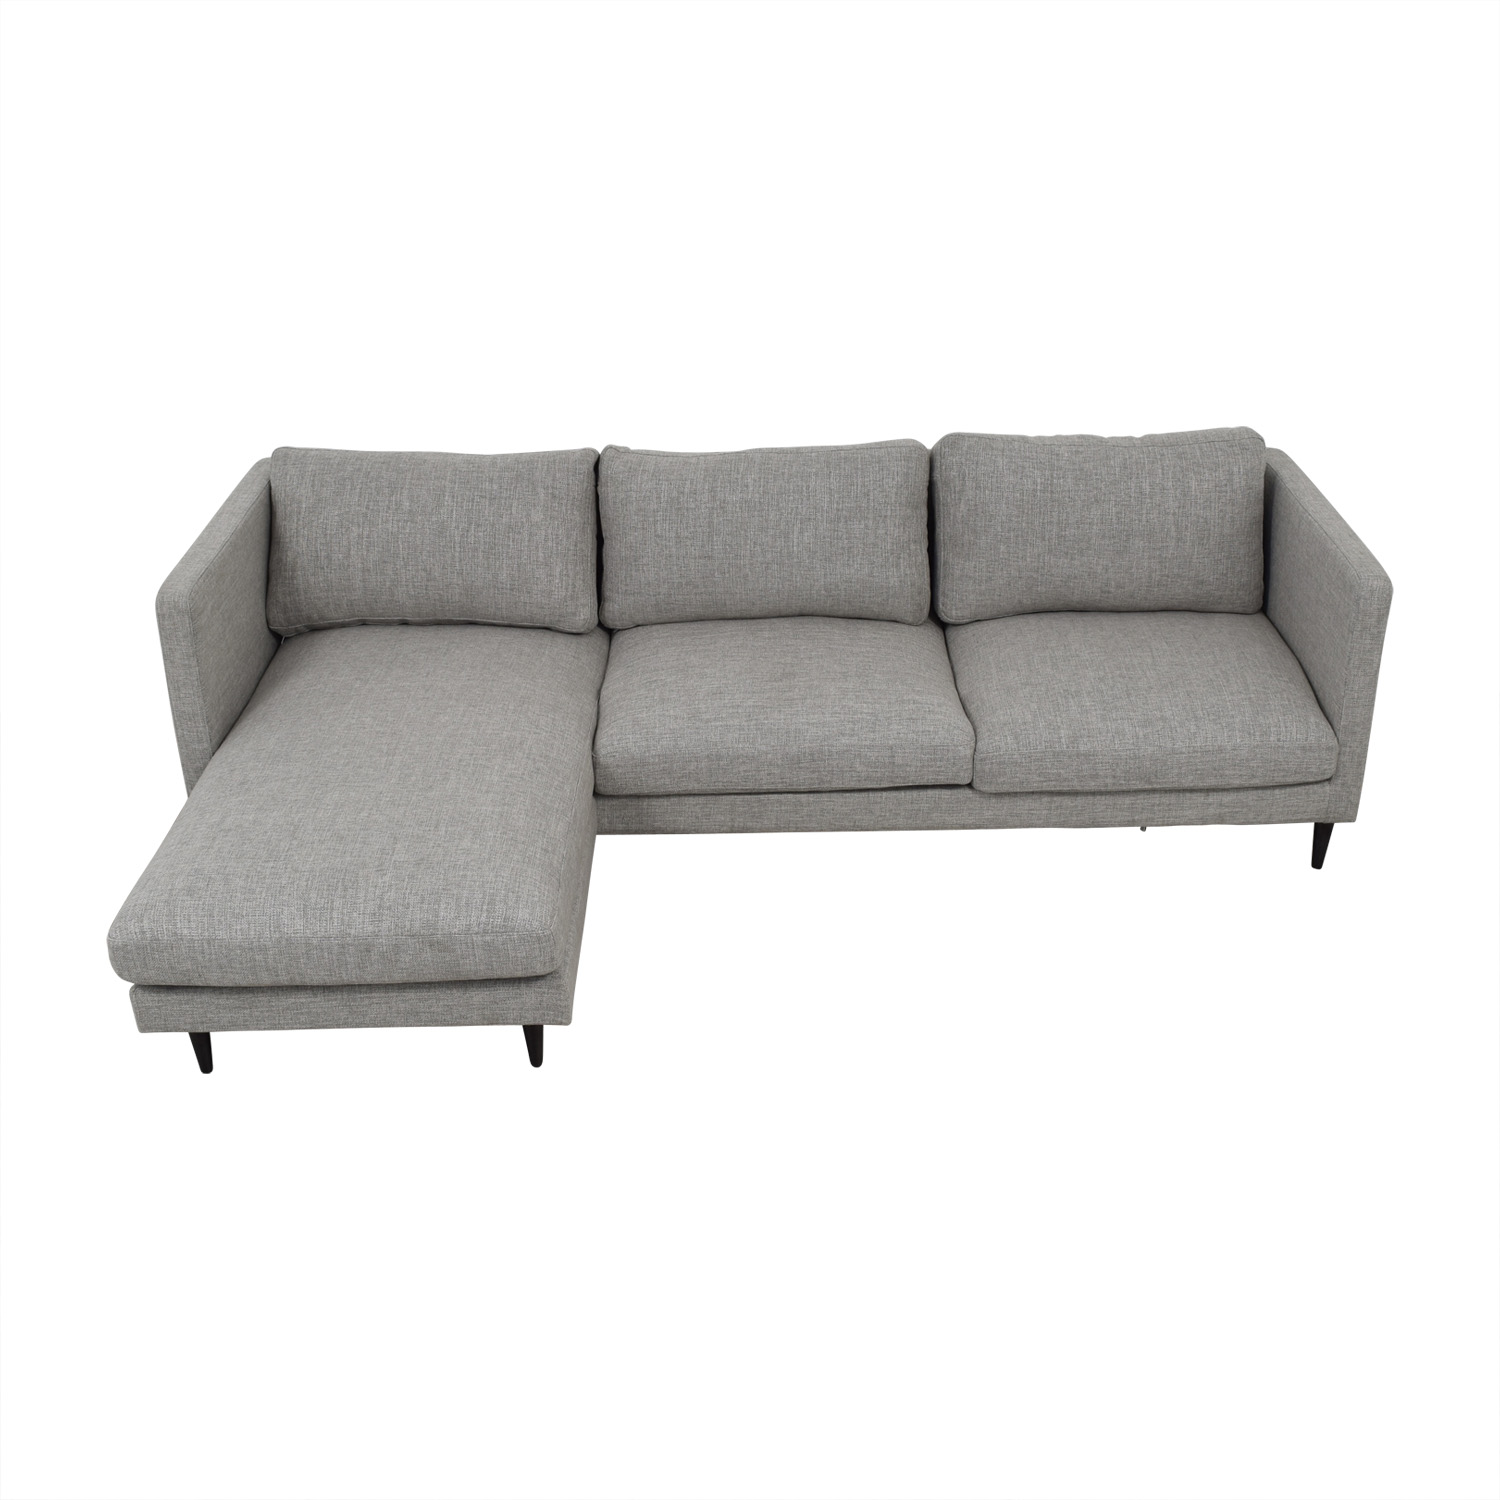 Oliver Grey Reversible Chaise Sectional on sale